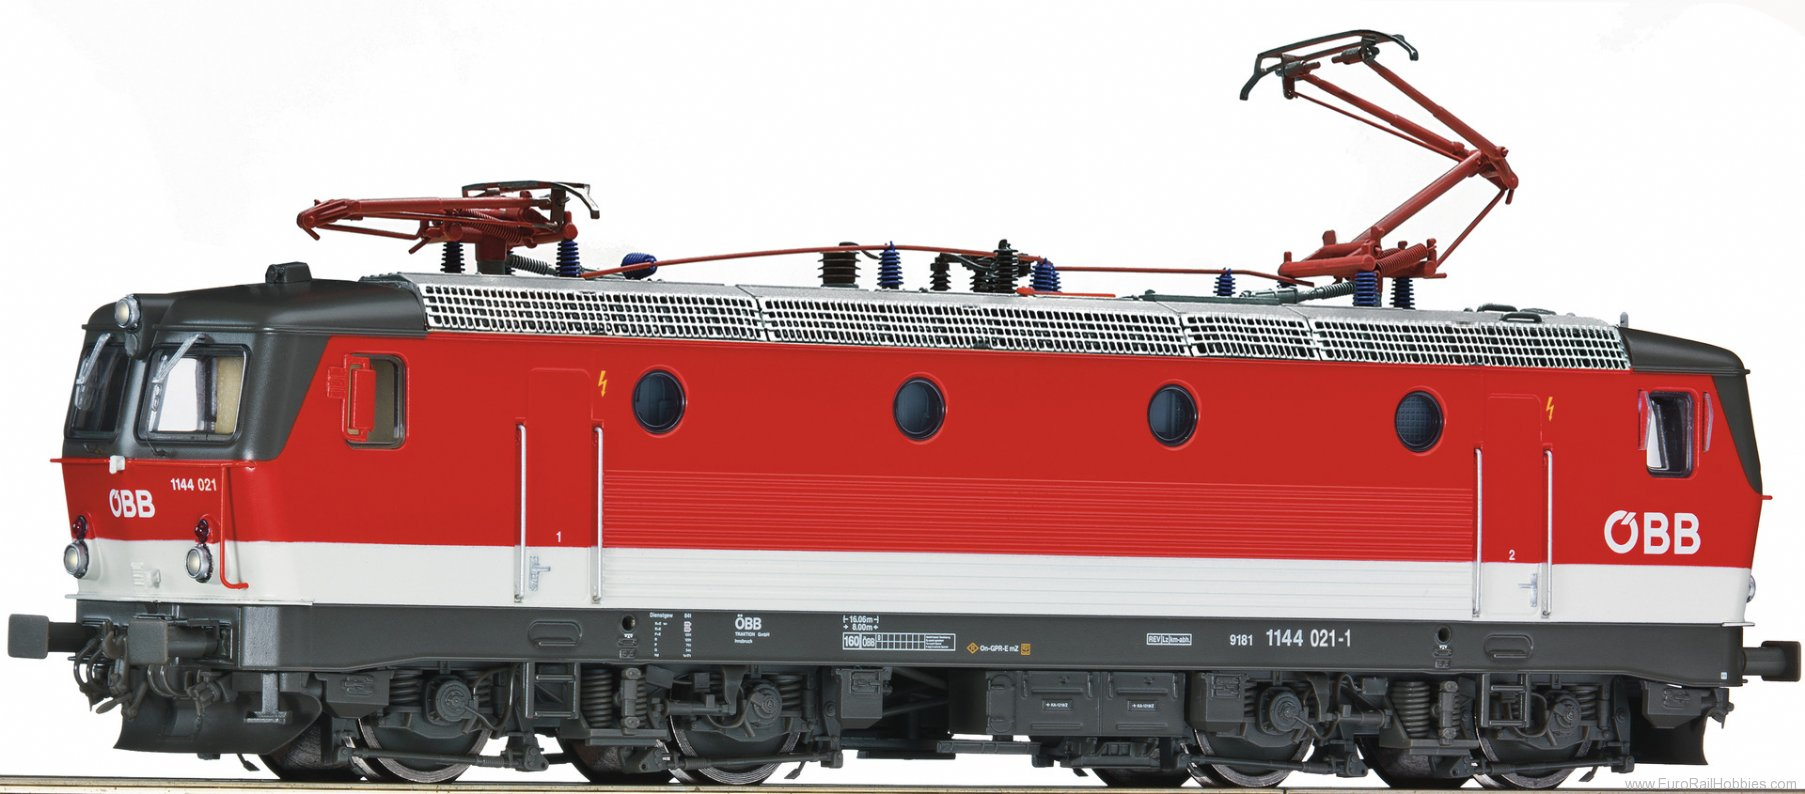 Roco 79555 Electric locomotive 1144 021, OBB (AC Digital